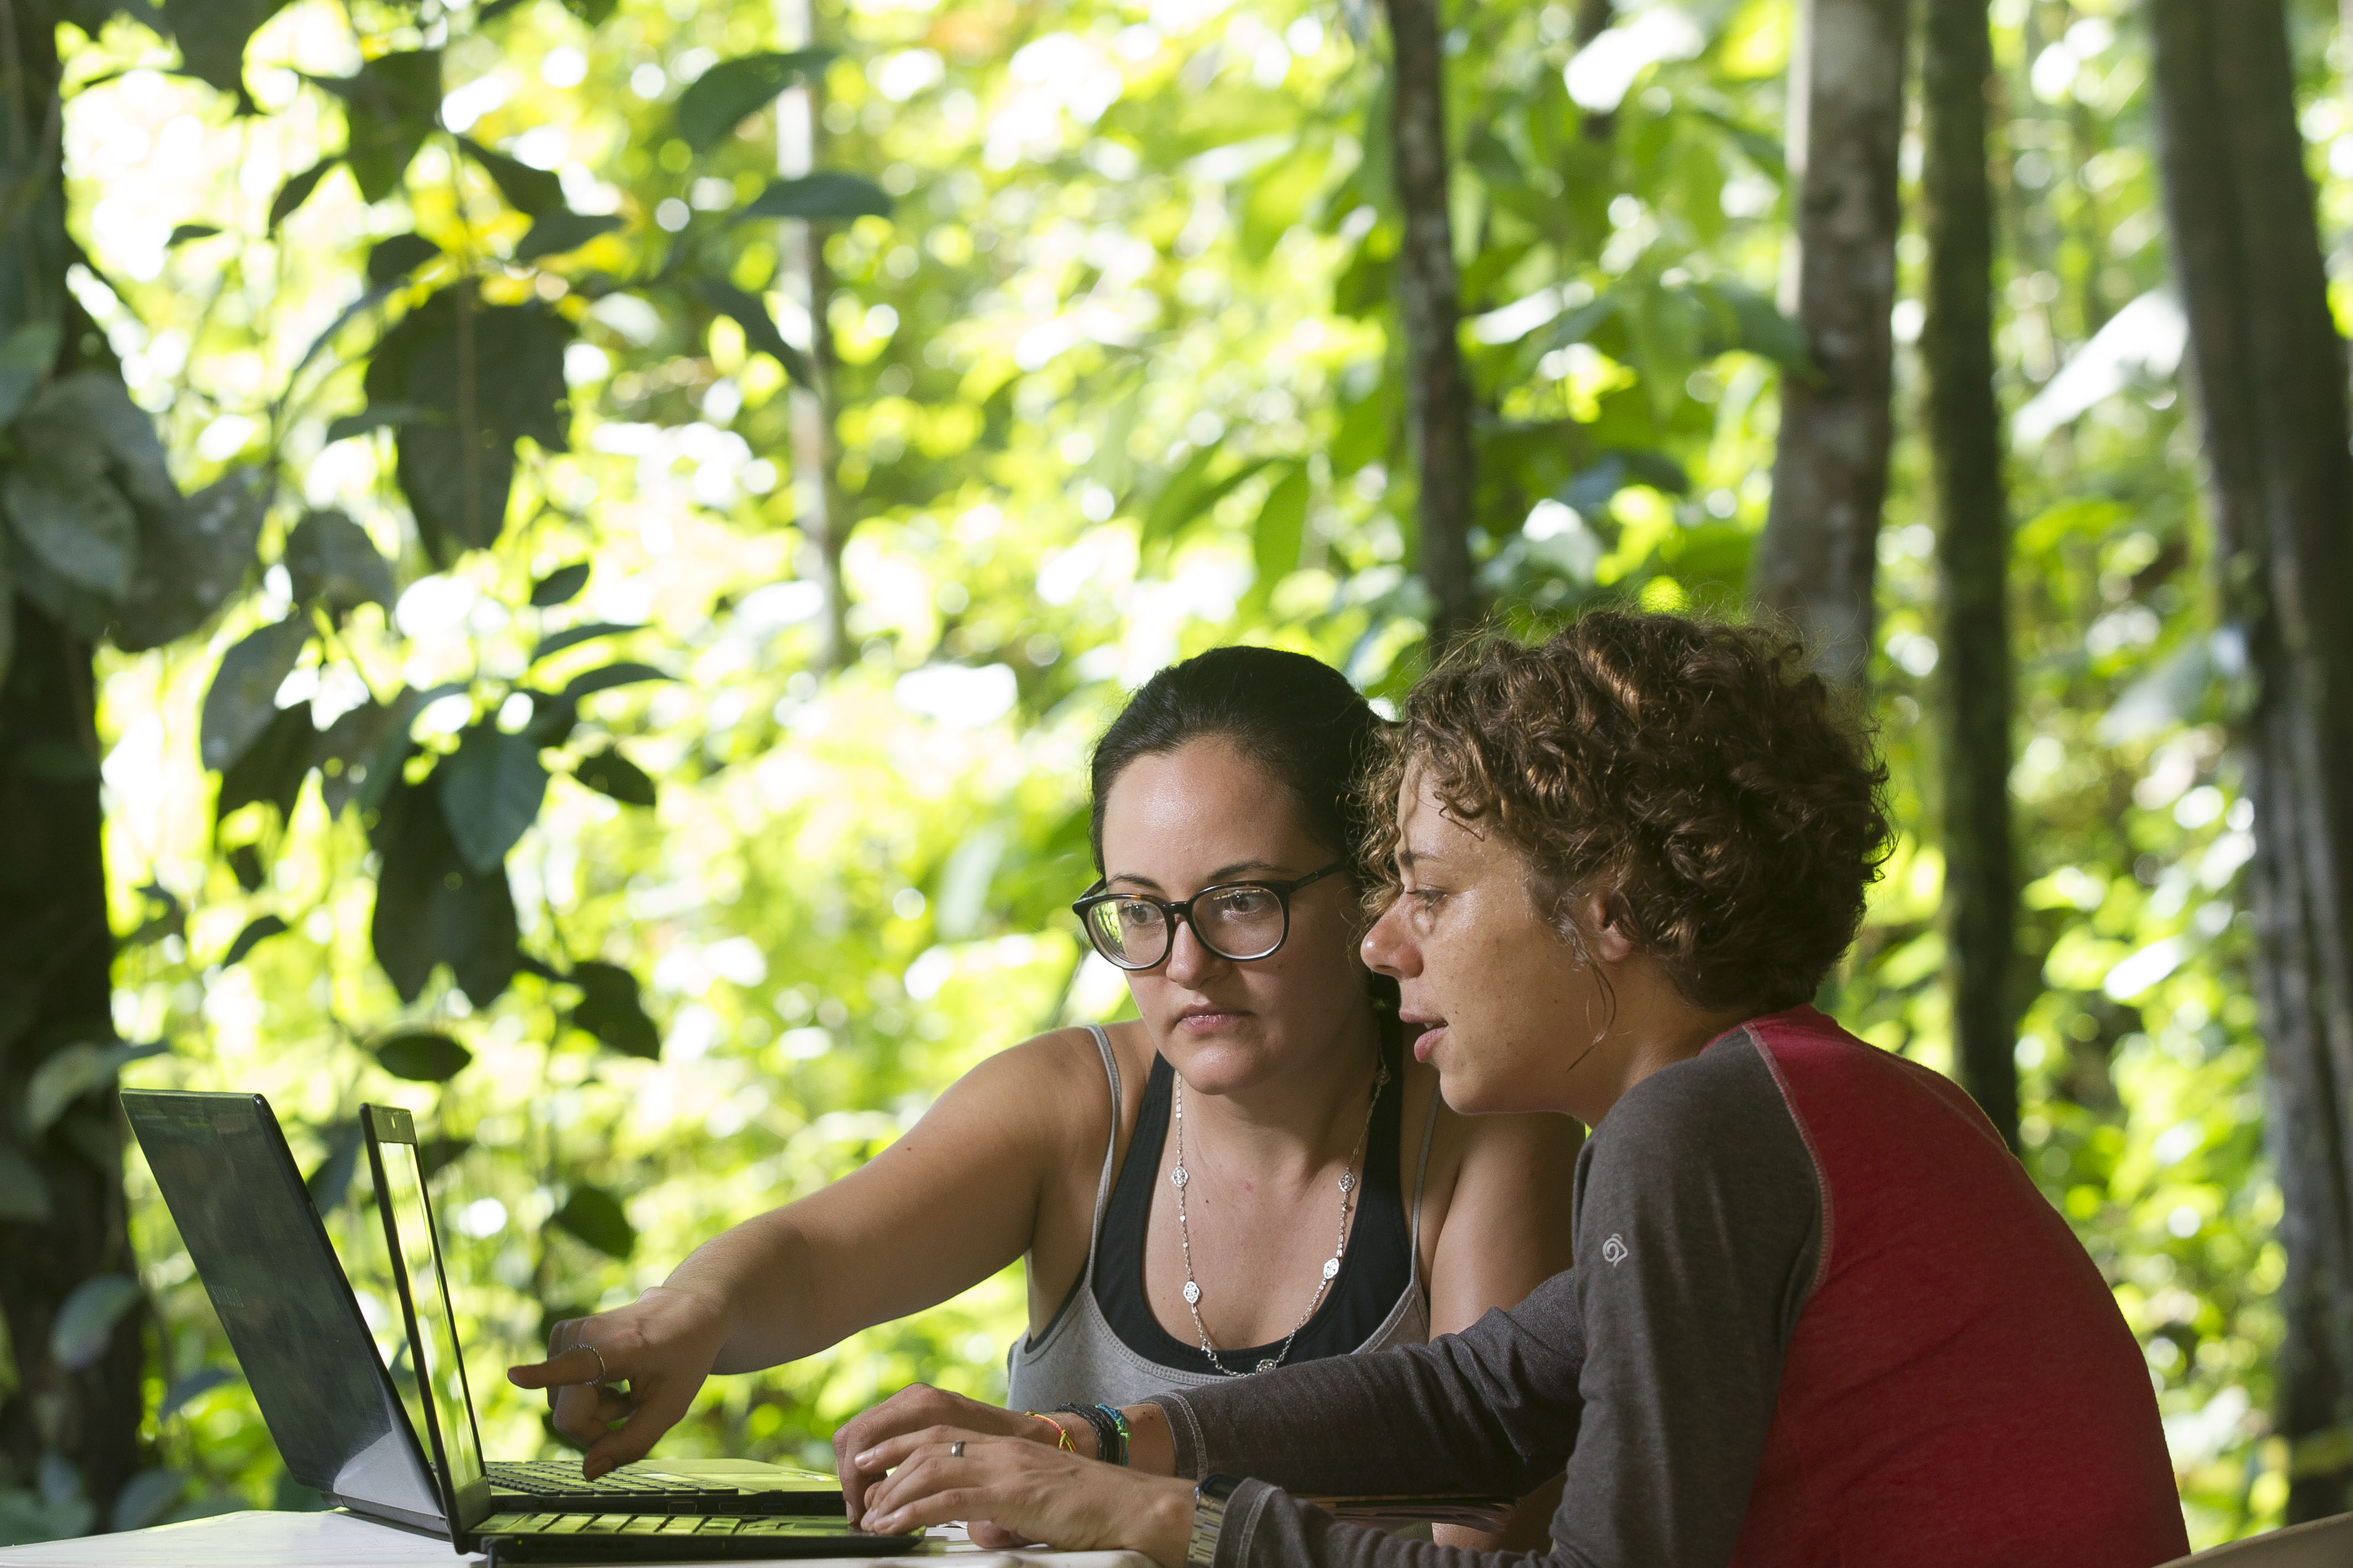 Katrin Fleischer (r.), researcher at the TUM, and Sabrina Garcia (l.) from the Instituto Nacional de Pesquisas da Amazônia working in the Brazilian rainforest.